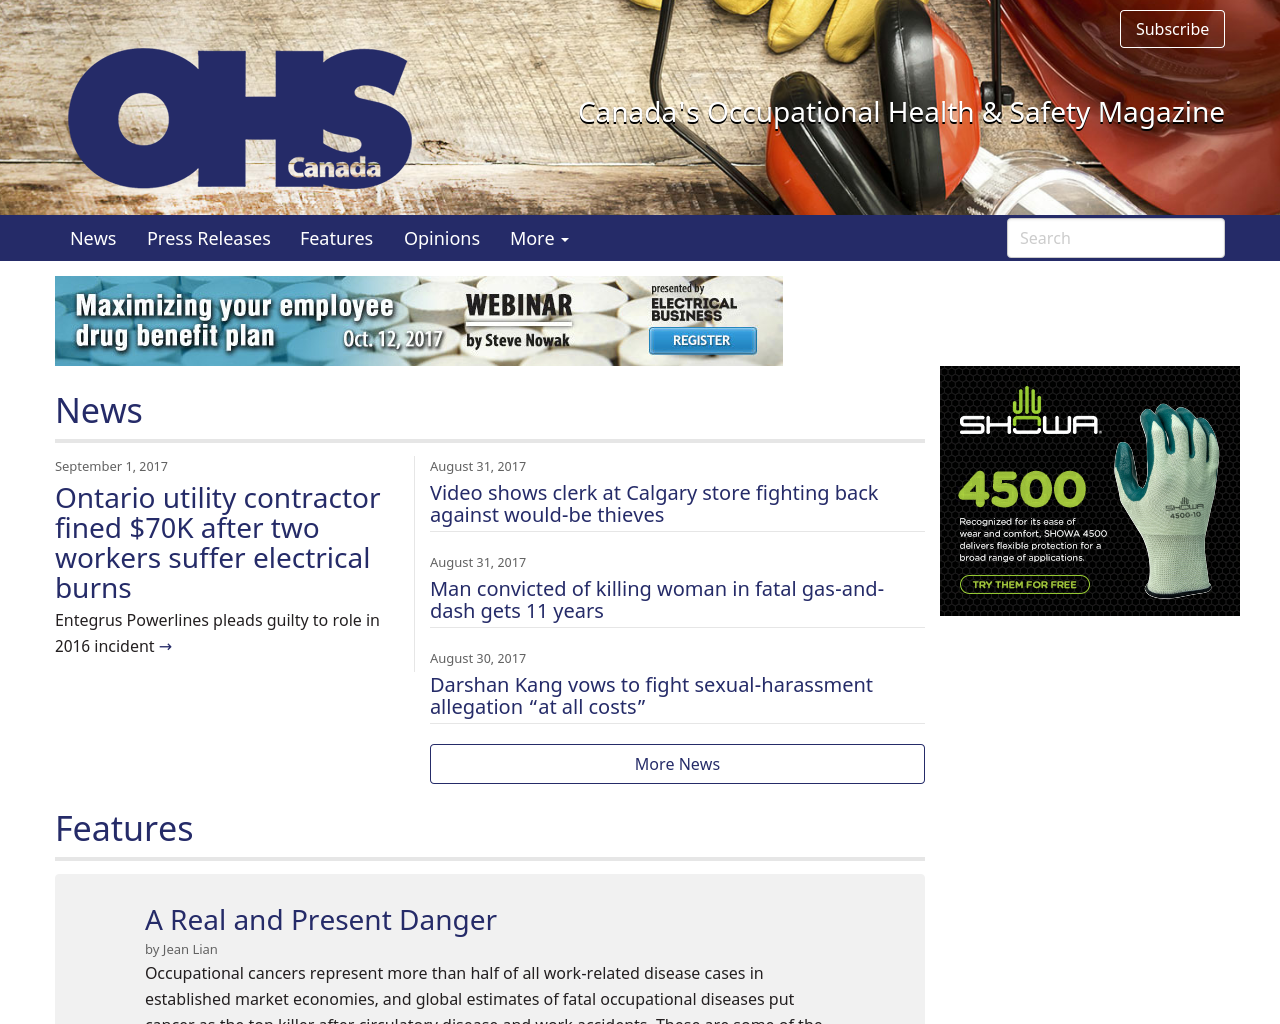 OHS-Canada's-Occupational-Health-&-Safety-Magazine-Advertising-Reviews-Pricing